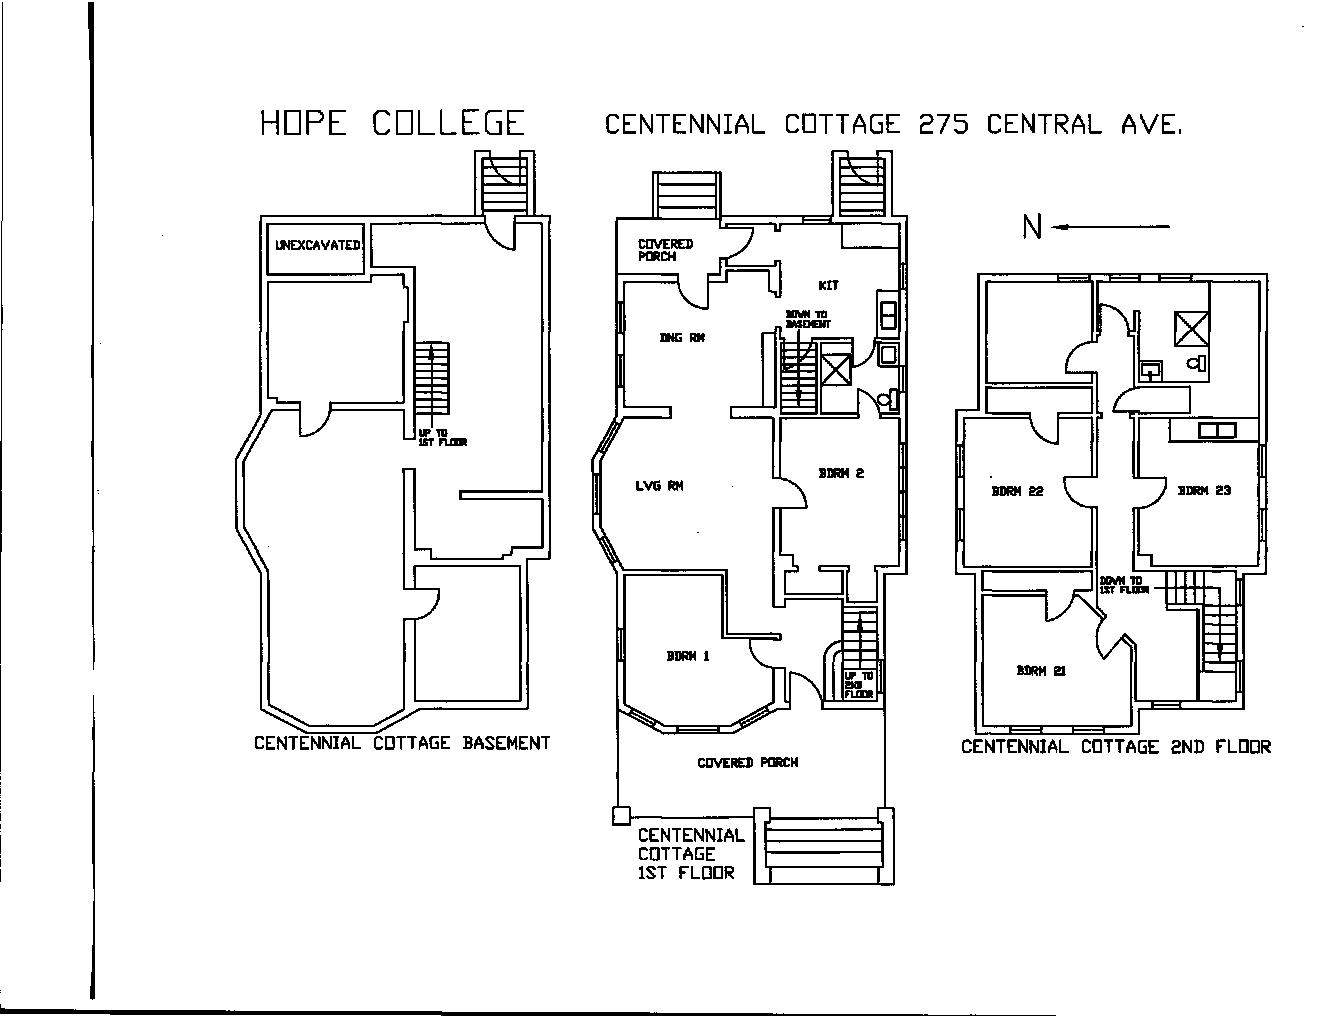 Hope College Campus Offices Residential Life Housing